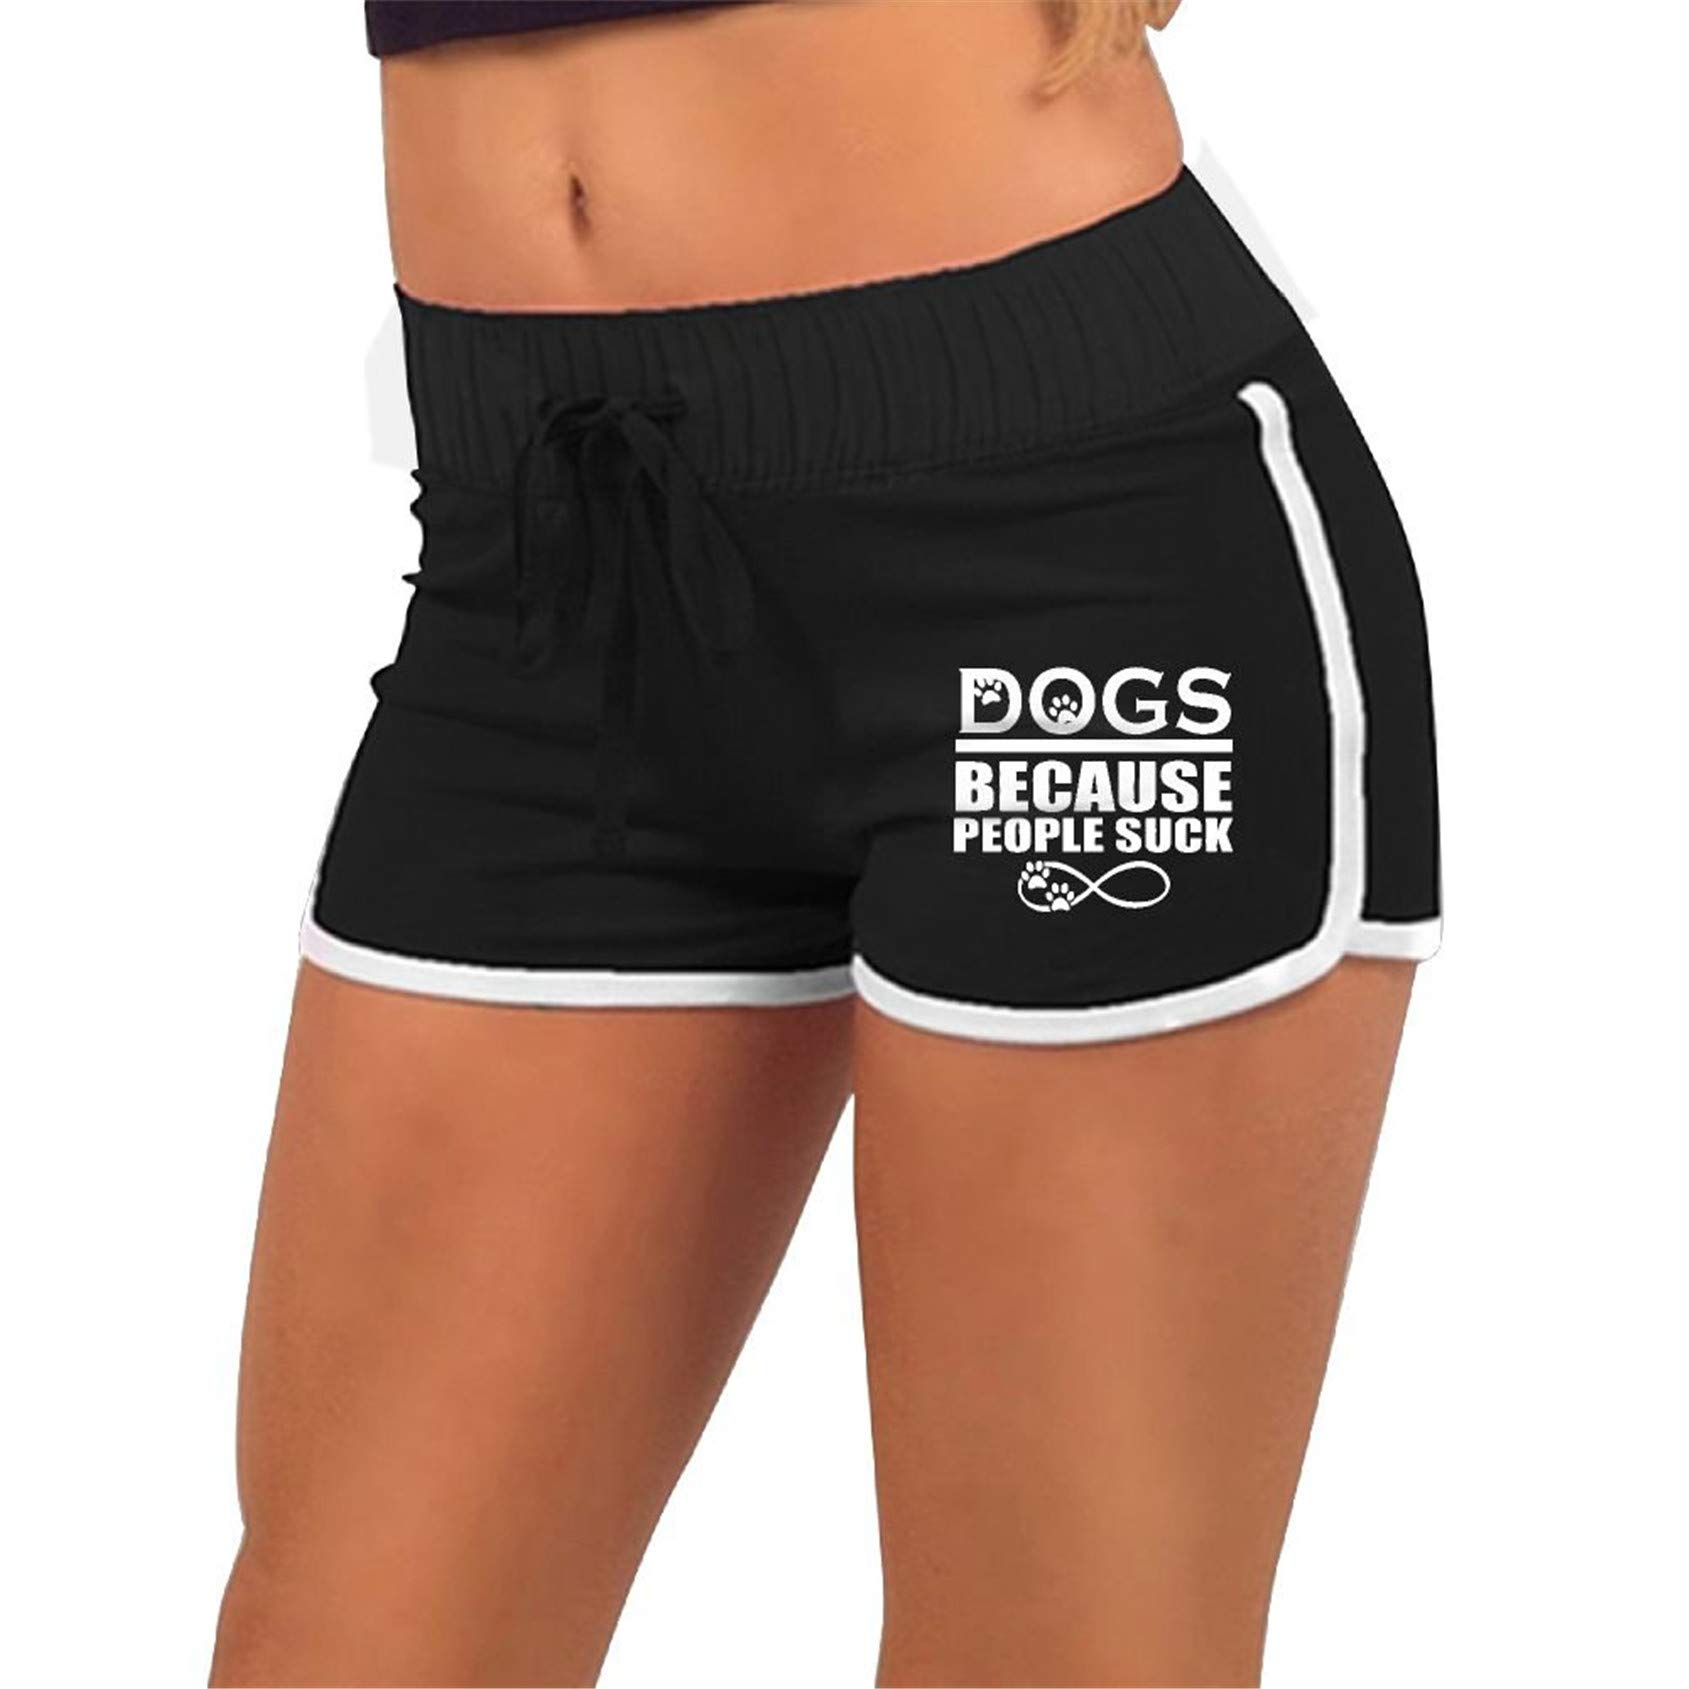 Dogs Because People Suck,Running Active Shorts Pants with,Athletic Elastic Waist Womens Sports Shorts